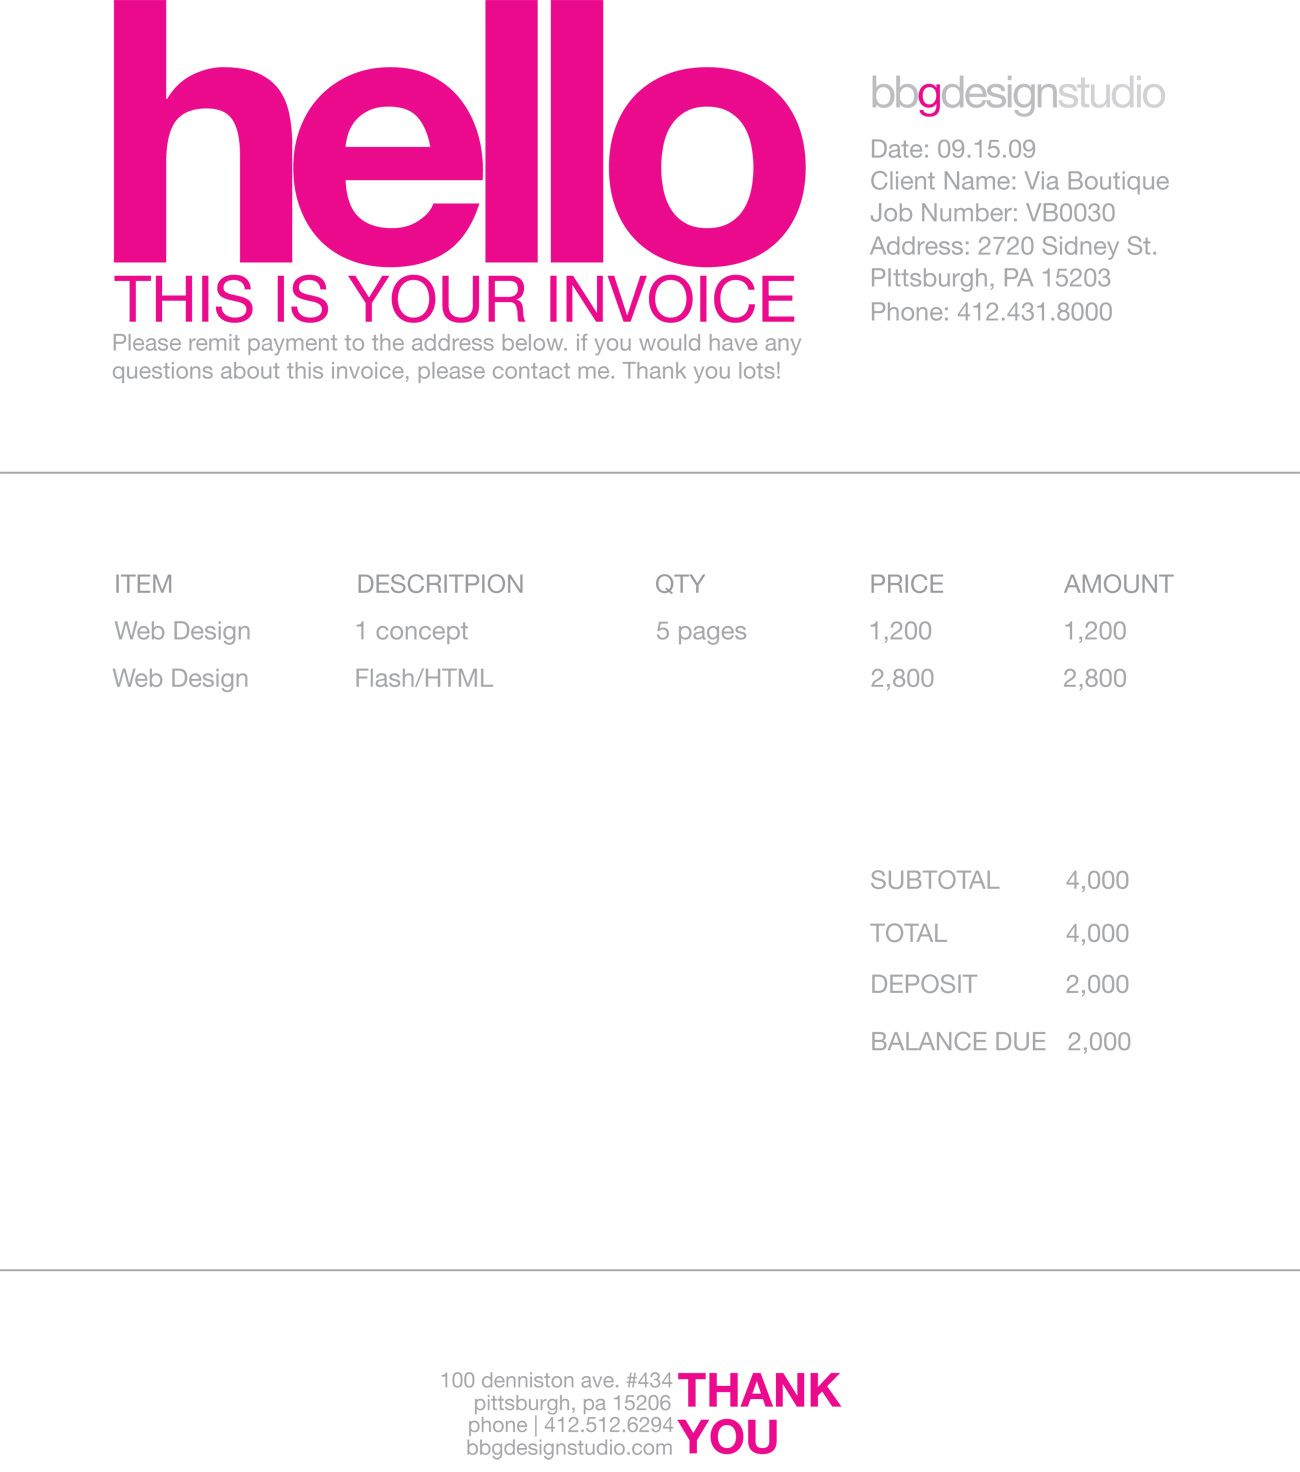 Coolmathgamesus  Pleasing  Images About Invoice Design On Pinterest With Licious Free Invoicing Templates Besides Landscaping Invoices Furthermore Wholesale Invoice With Divine Invoicing Service Also Invoice Cost Of Car In Addition Quick Invoice Pro And What Is The Dealer Invoice Price As Well As Create Free Invoices Additionally Free Invoice Templates For Word From Pinterestcom With Coolmathgamesus  Licious  Images About Invoice Design On Pinterest With Divine Free Invoicing Templates Besides Landscaping Invoices Furthermore Wholesale Invoice And Pleasing Invoicing Service Also Invoice Cost Of Car In Addition Quick Invoice Pro From Pinterestcom